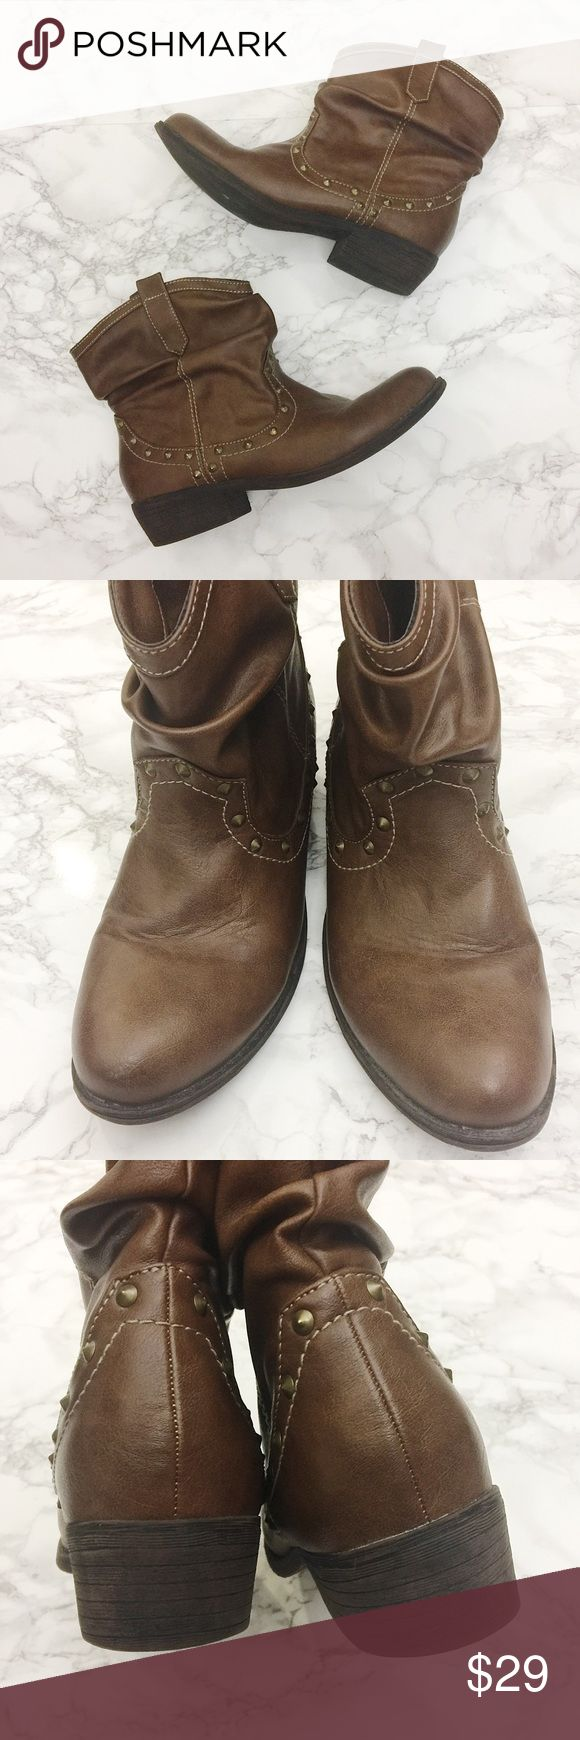 Report Brown Studded Booties Brown slouchy booties with studs. Like new condition. Report Shoes Ankle Boots & Booties